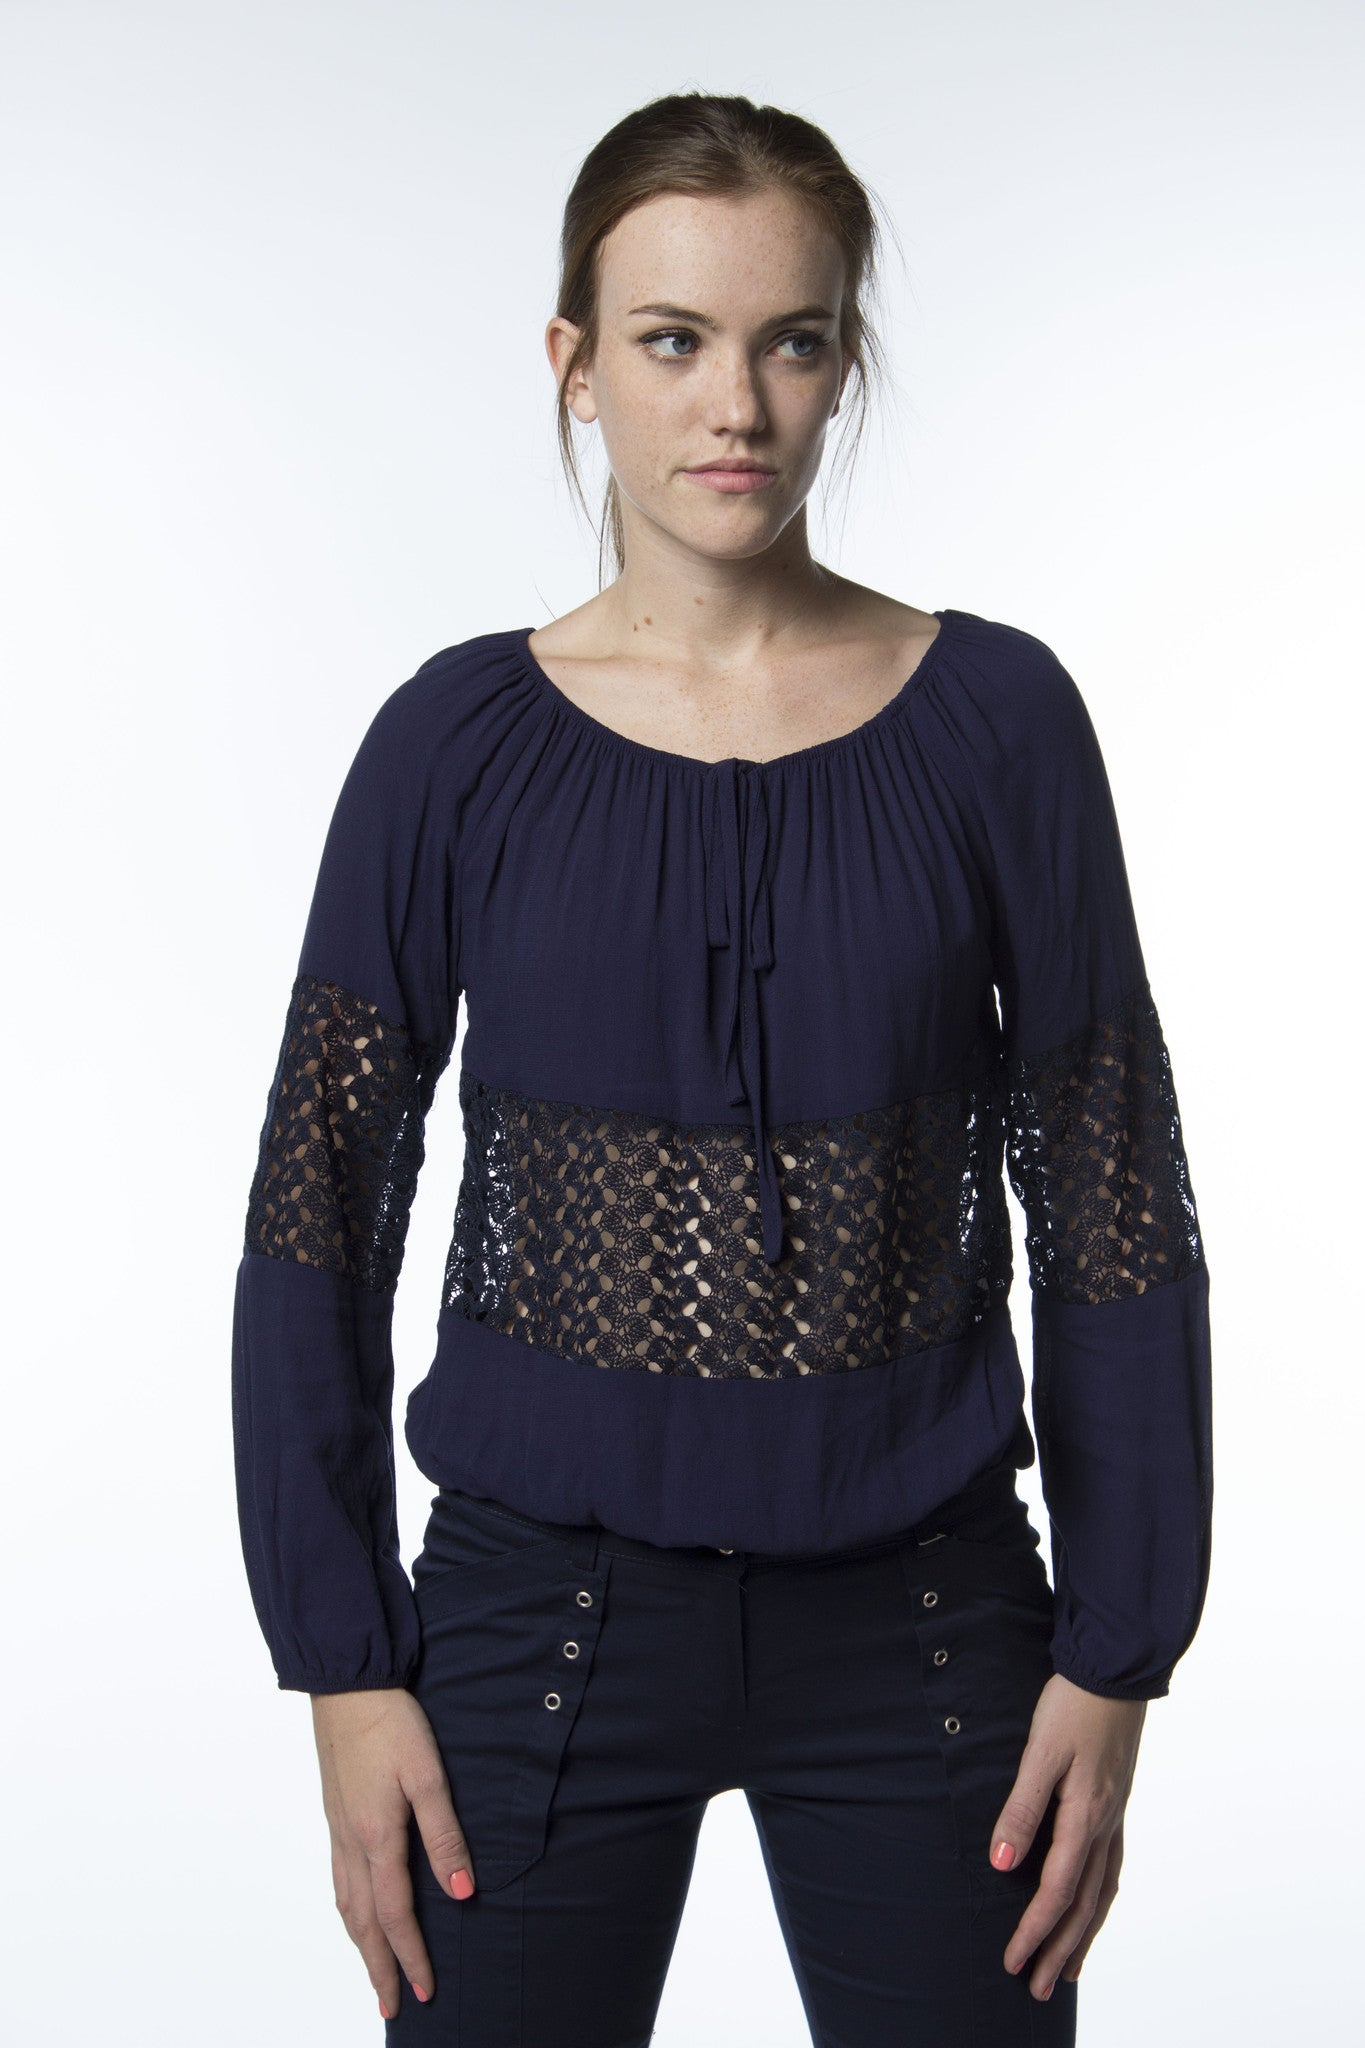 navy blue top with see through lace panels